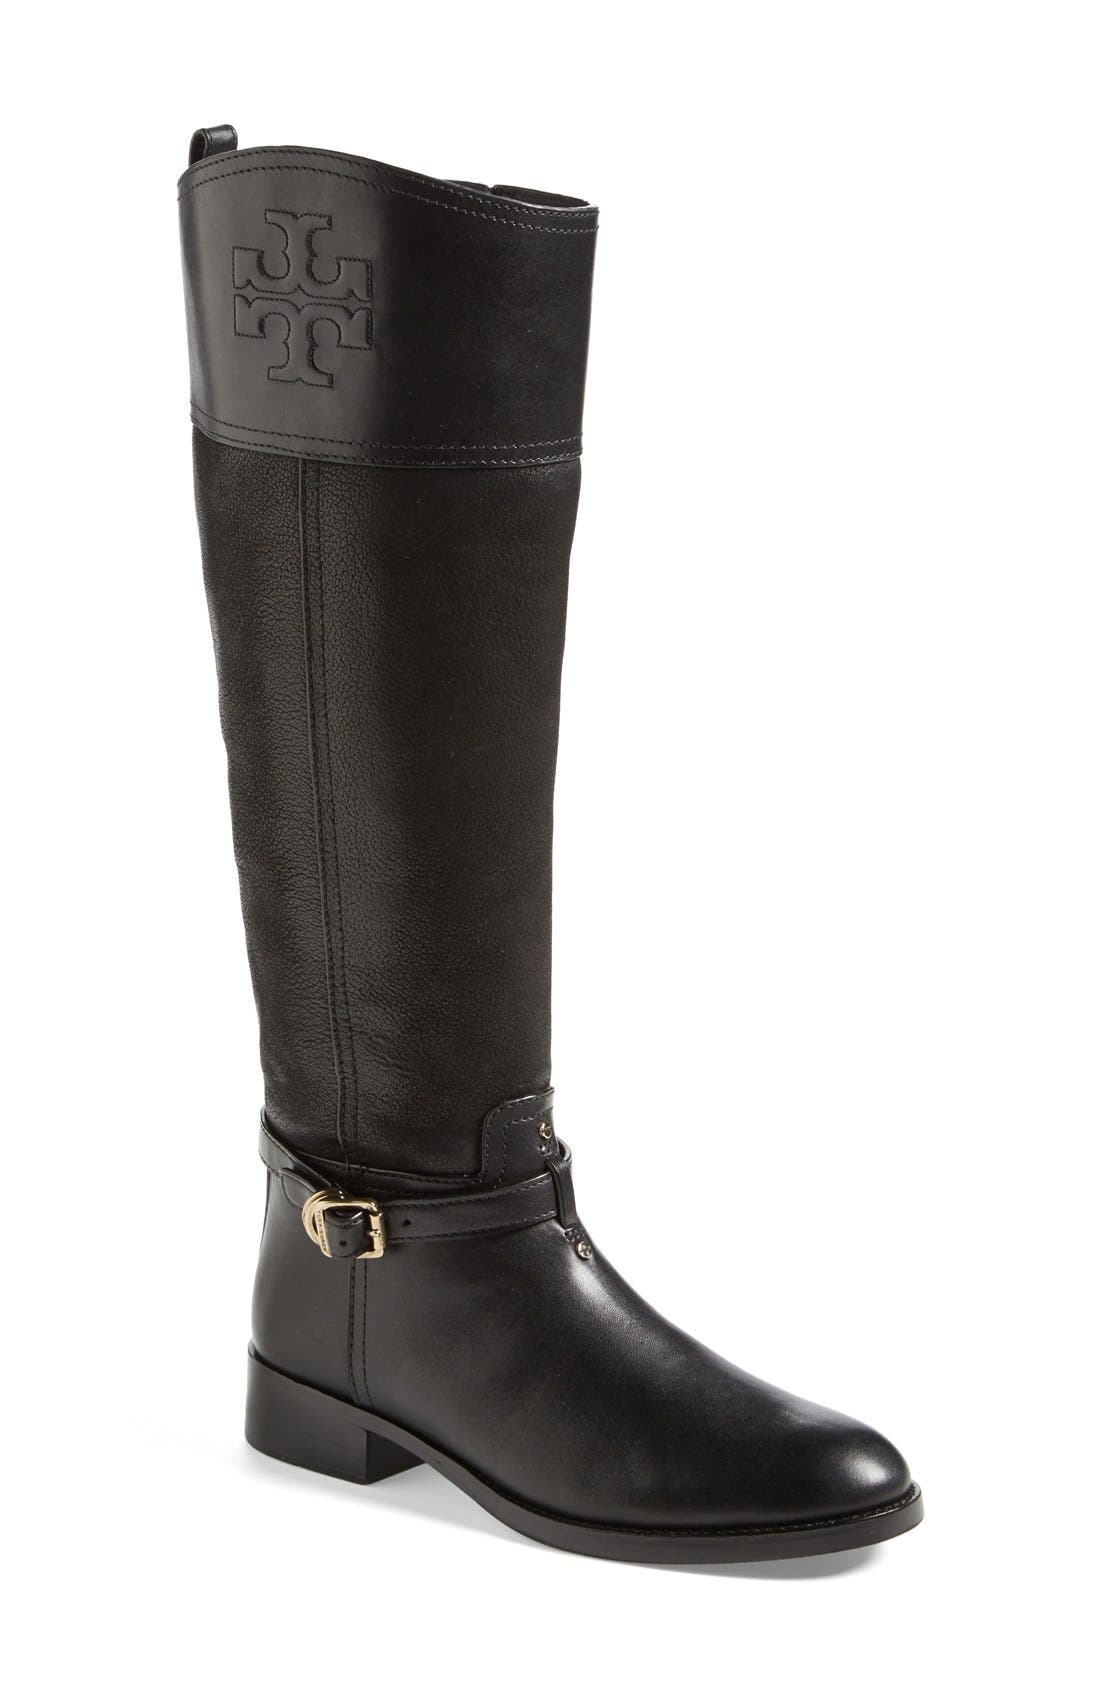 Main Image - Tory Burch 'Simone' Riding Boot (Women) (Nordstrom Exclusive)